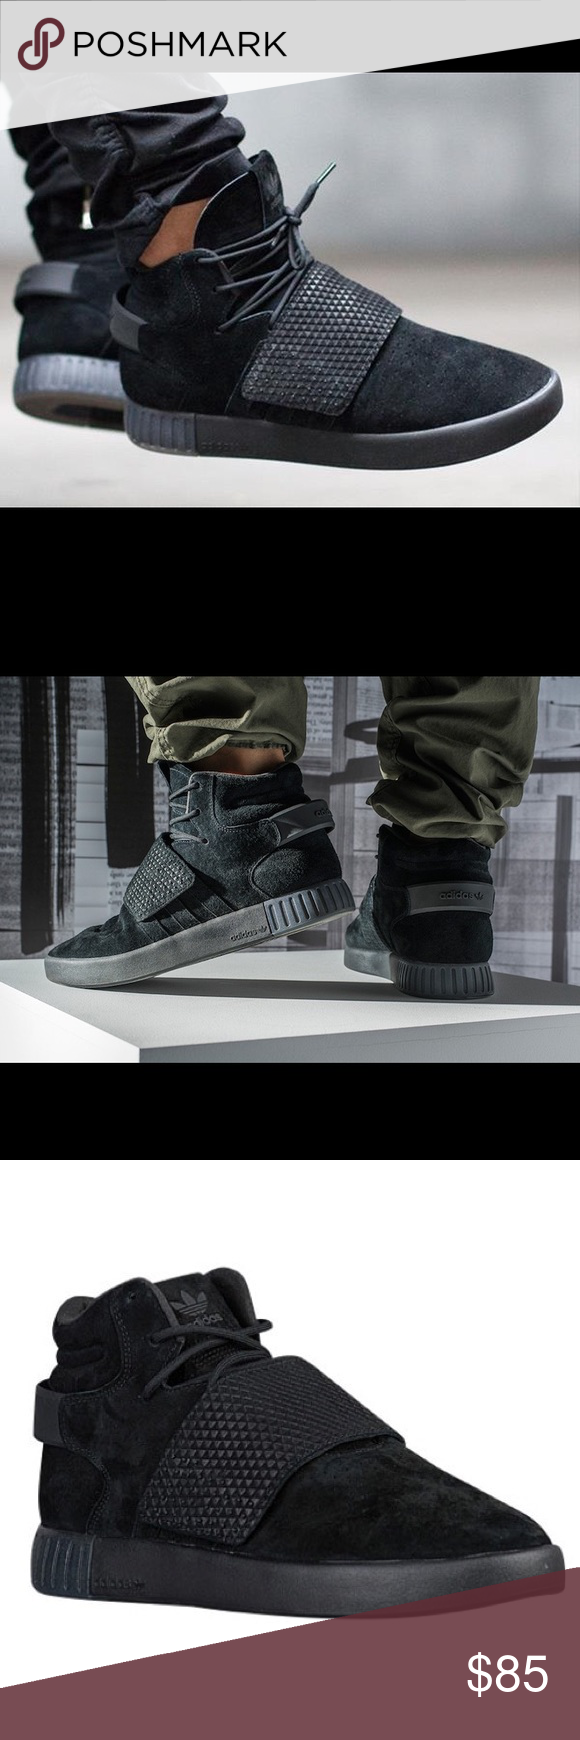 new style 48020 35169 Men s Adidas Tubular Invader Strap Black Suede Men s Adidas Tubular Invader  Strap Black Suede Shoes Size